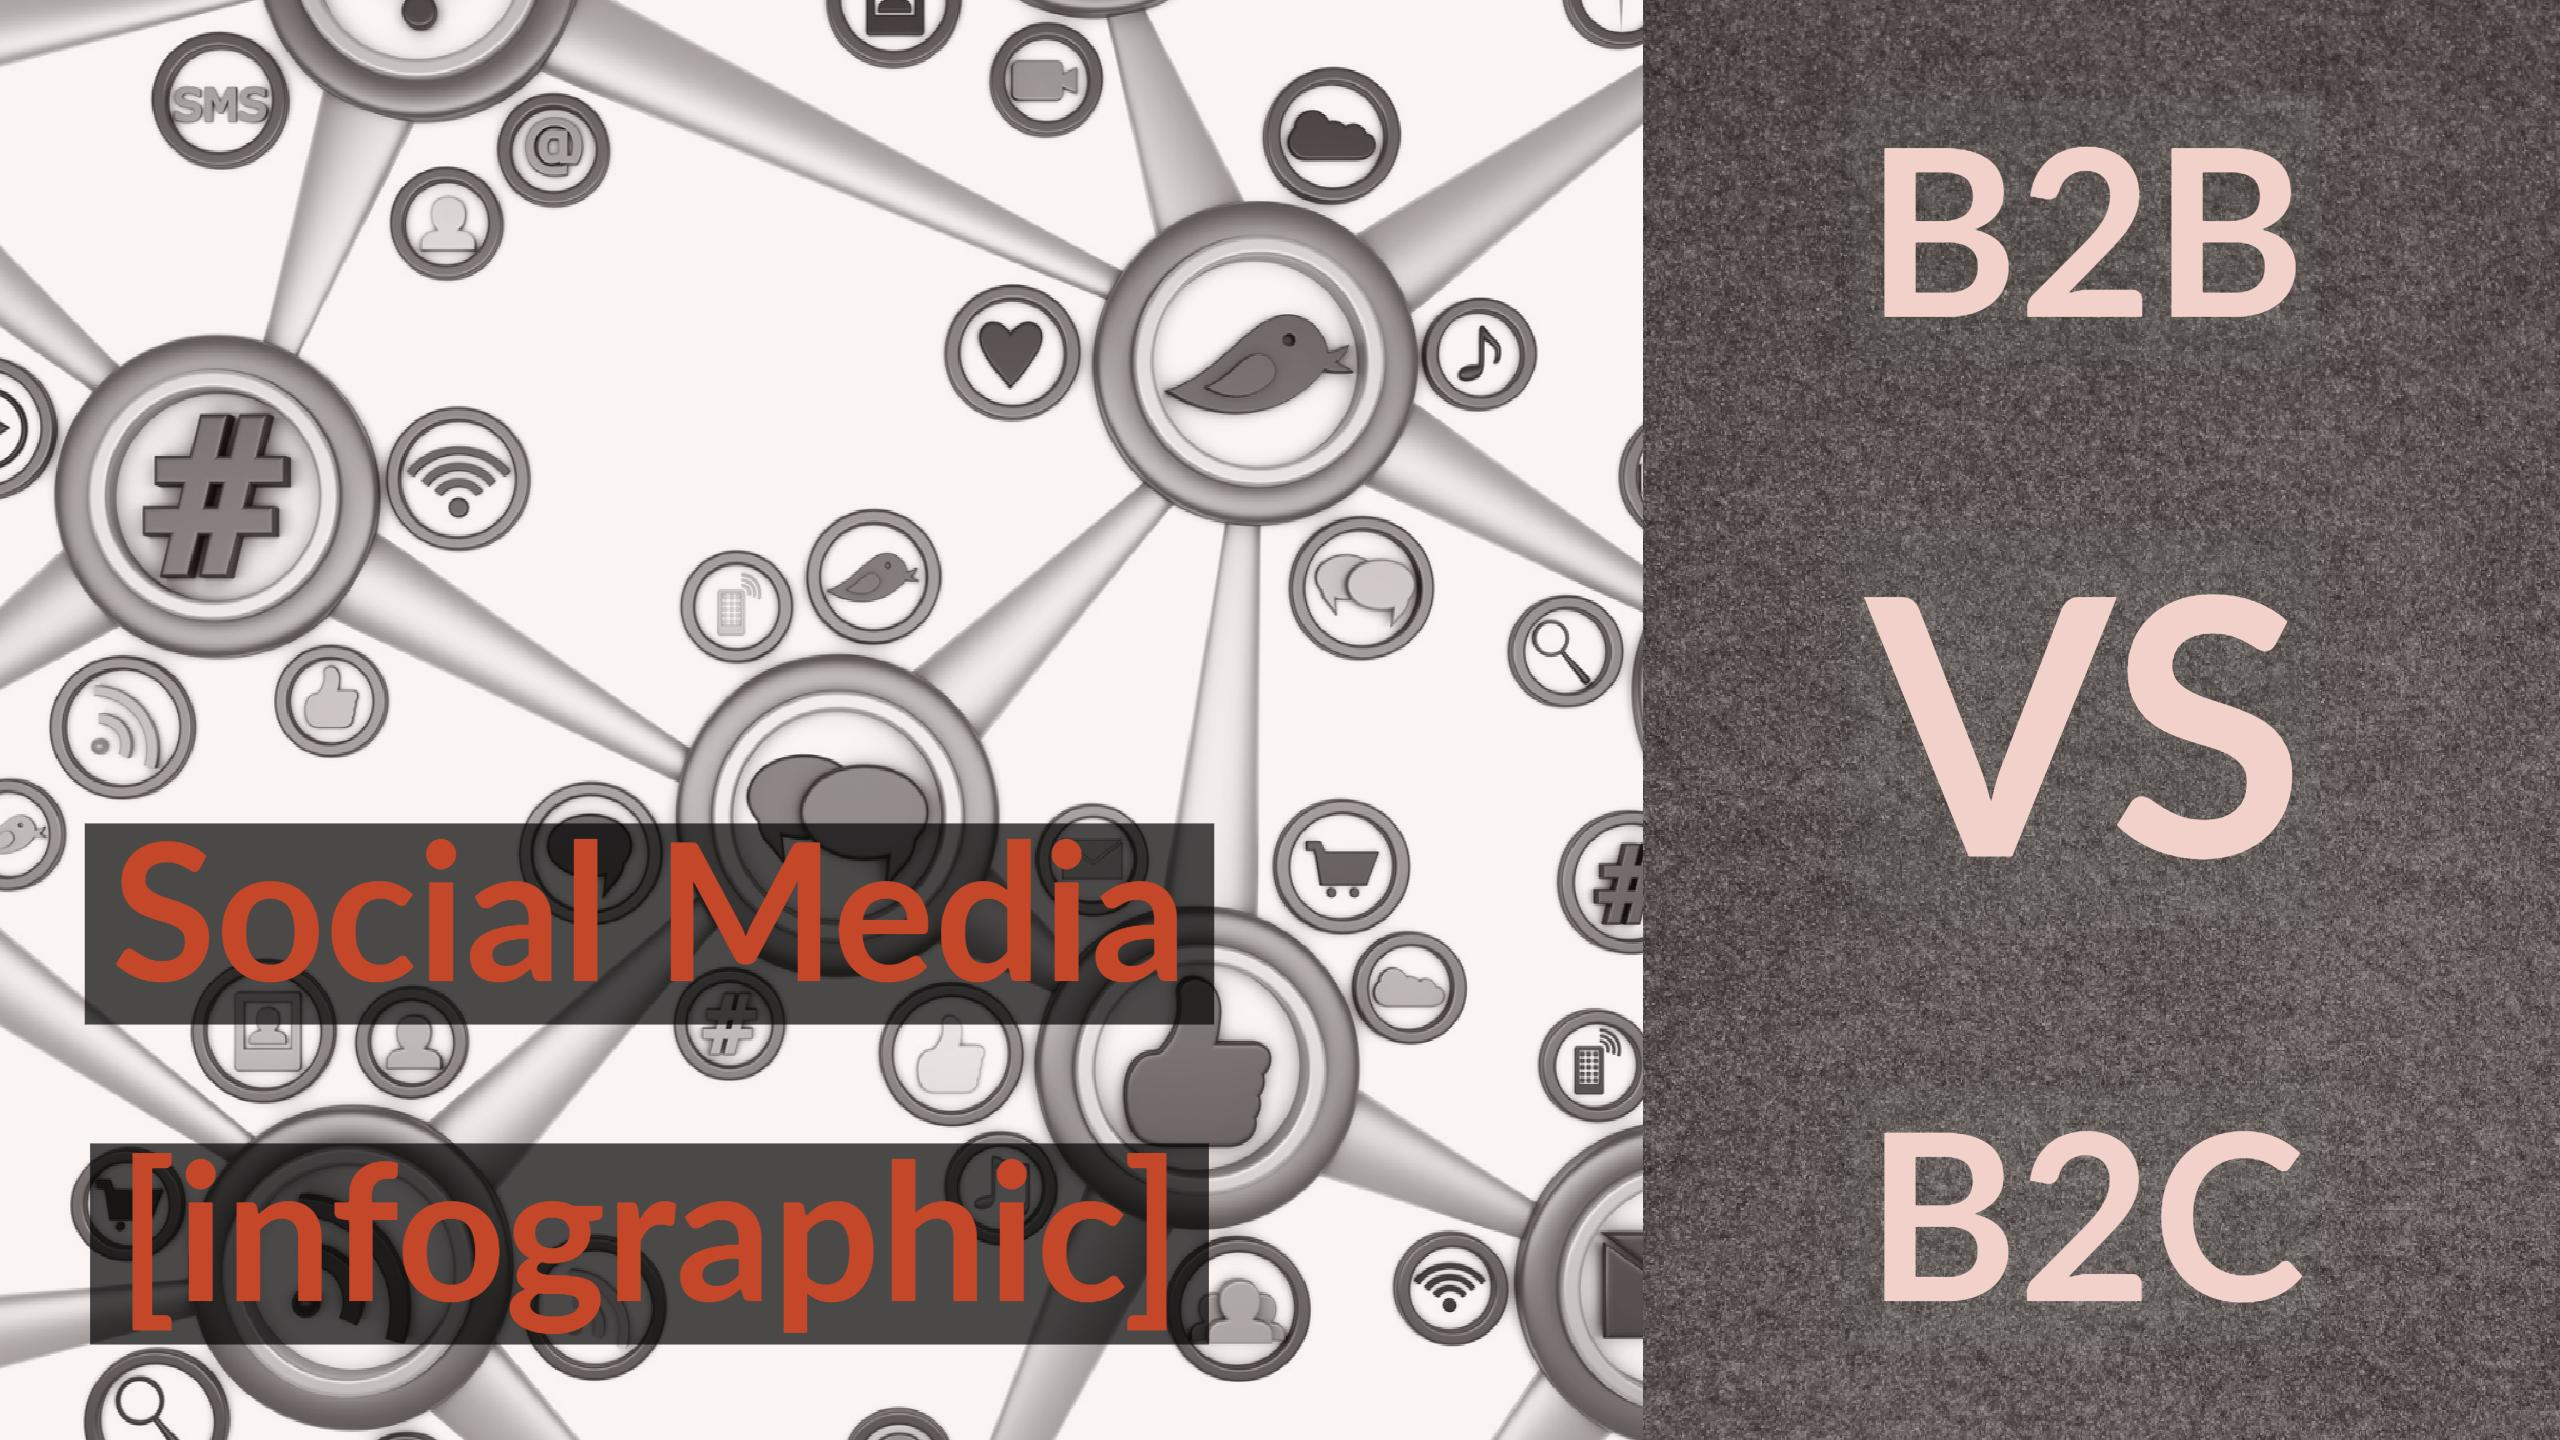 The Difference Between B2B & B2C on Social Media